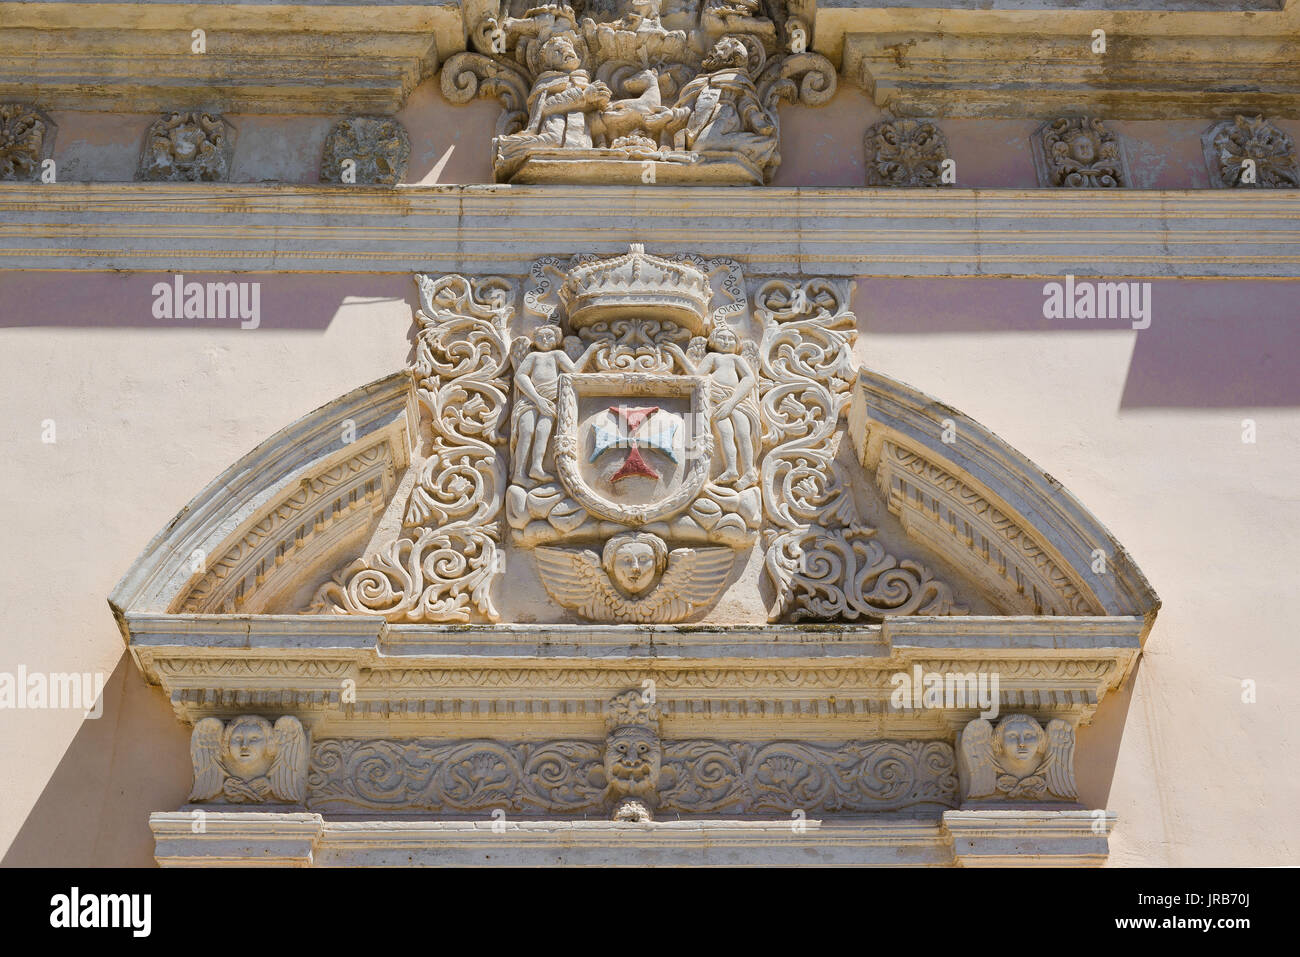 Baroque broken pediment sited above the west door of the Chiesa della S. Trinita church in Sassari, Sardinia. Stock Photo